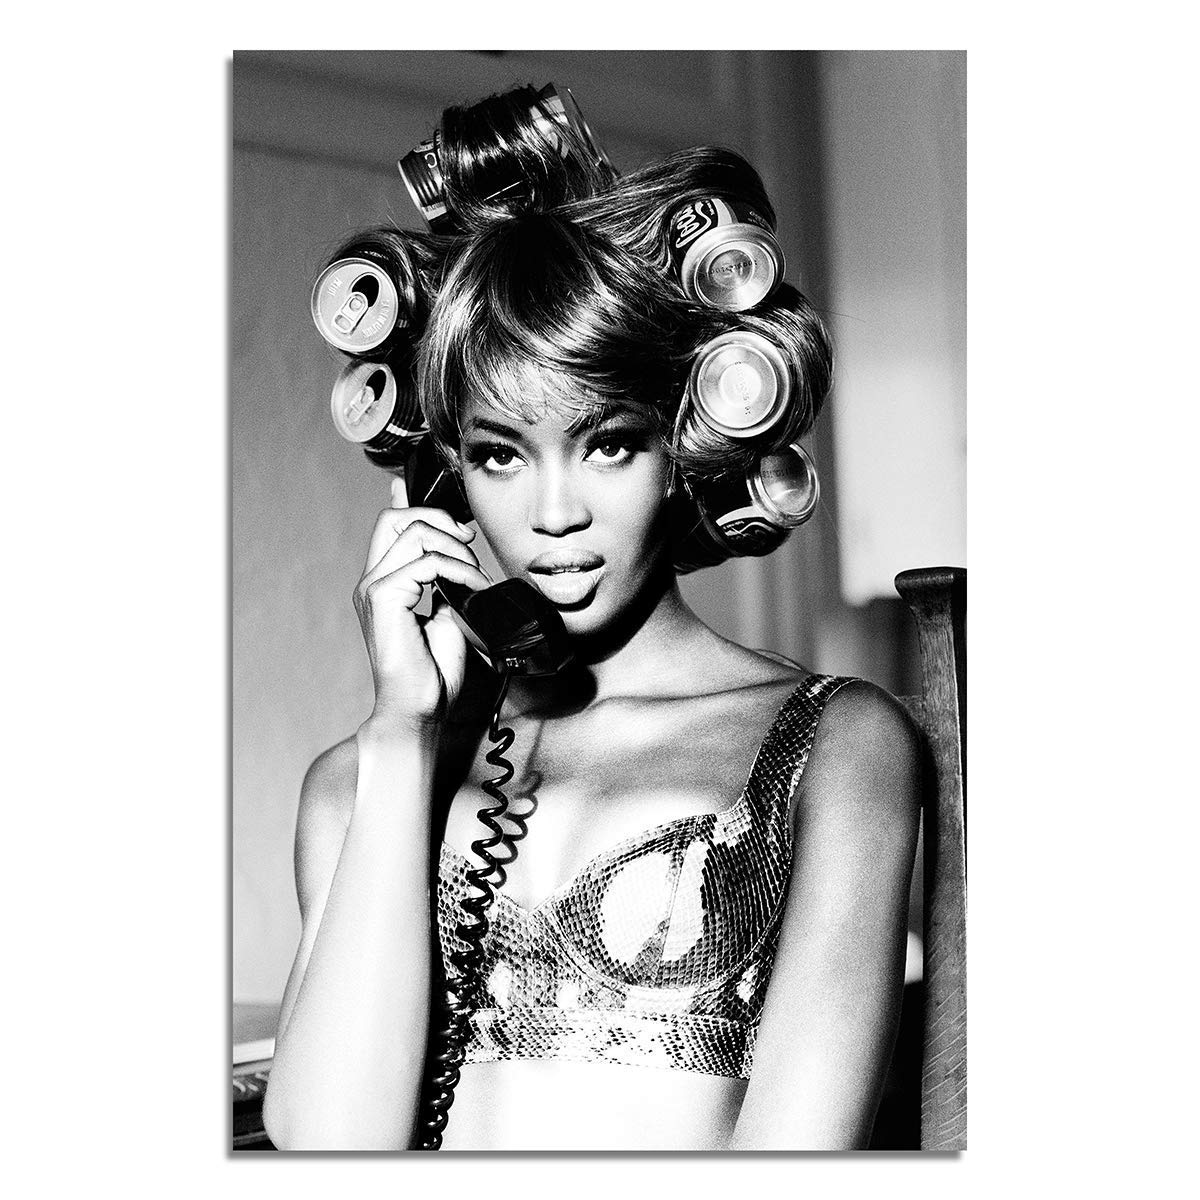 Naomi Campbell 90s Super Model Pin Up Canv Poster Erotic Art and Limited price New item